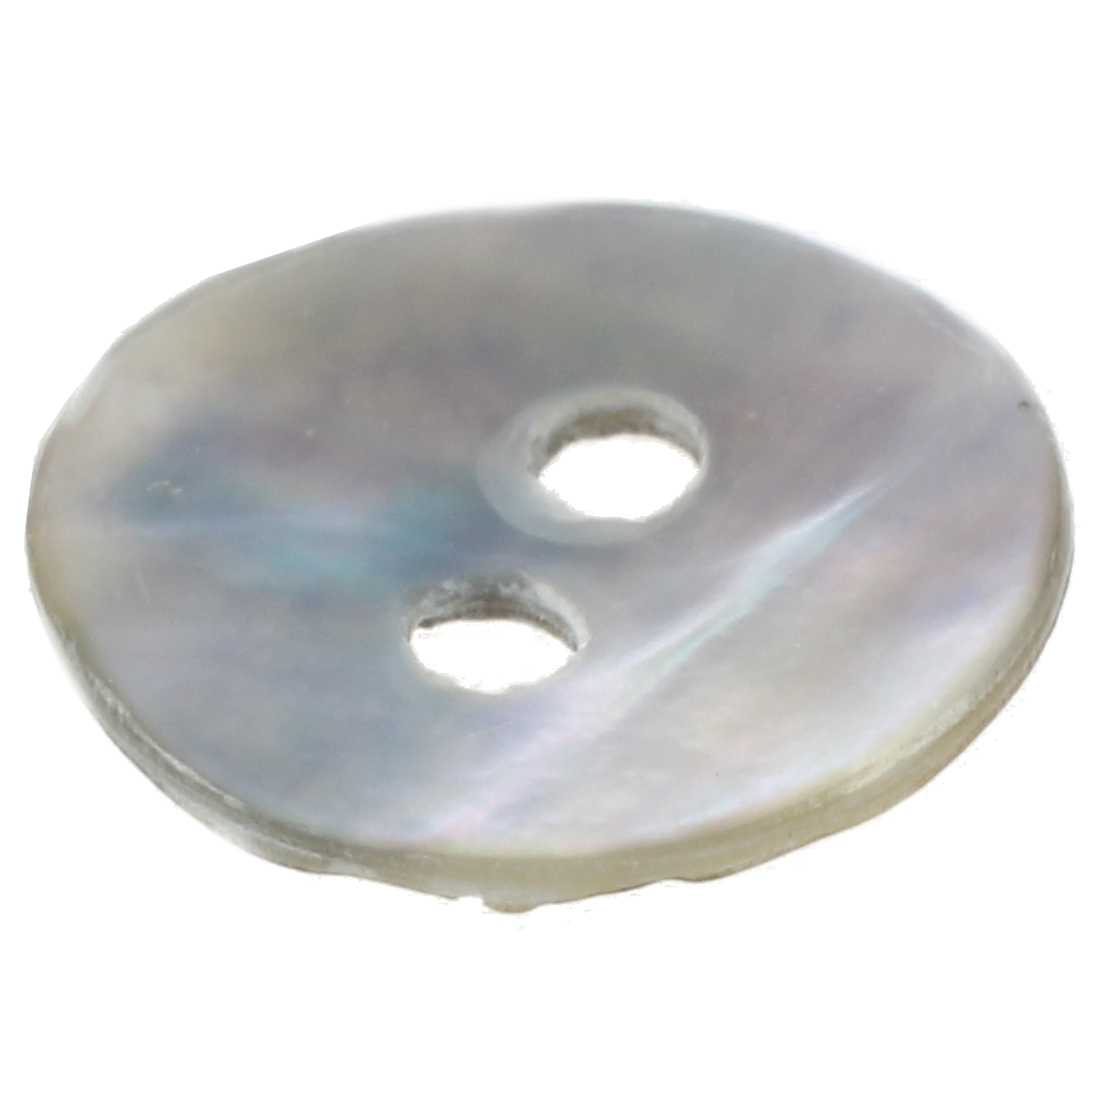 100 x 10 mm Pearl Mussels Round Buttons